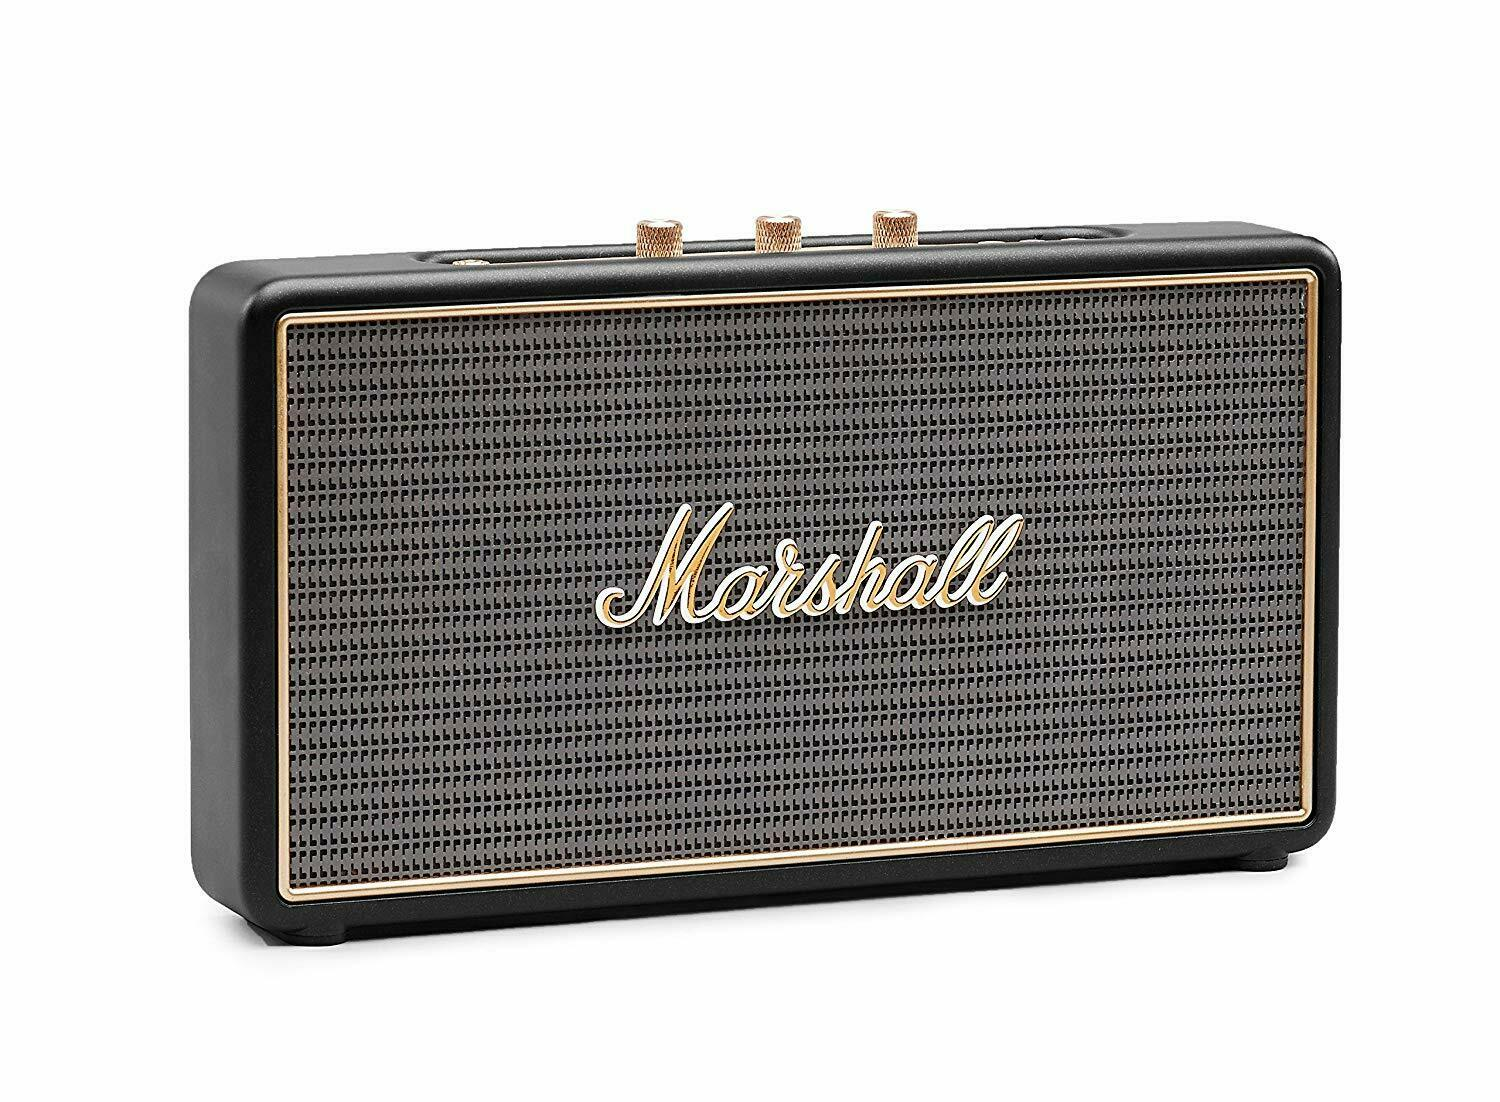 Marshall Stockwell Portable Speaker w/ Bluetooth Connectivit